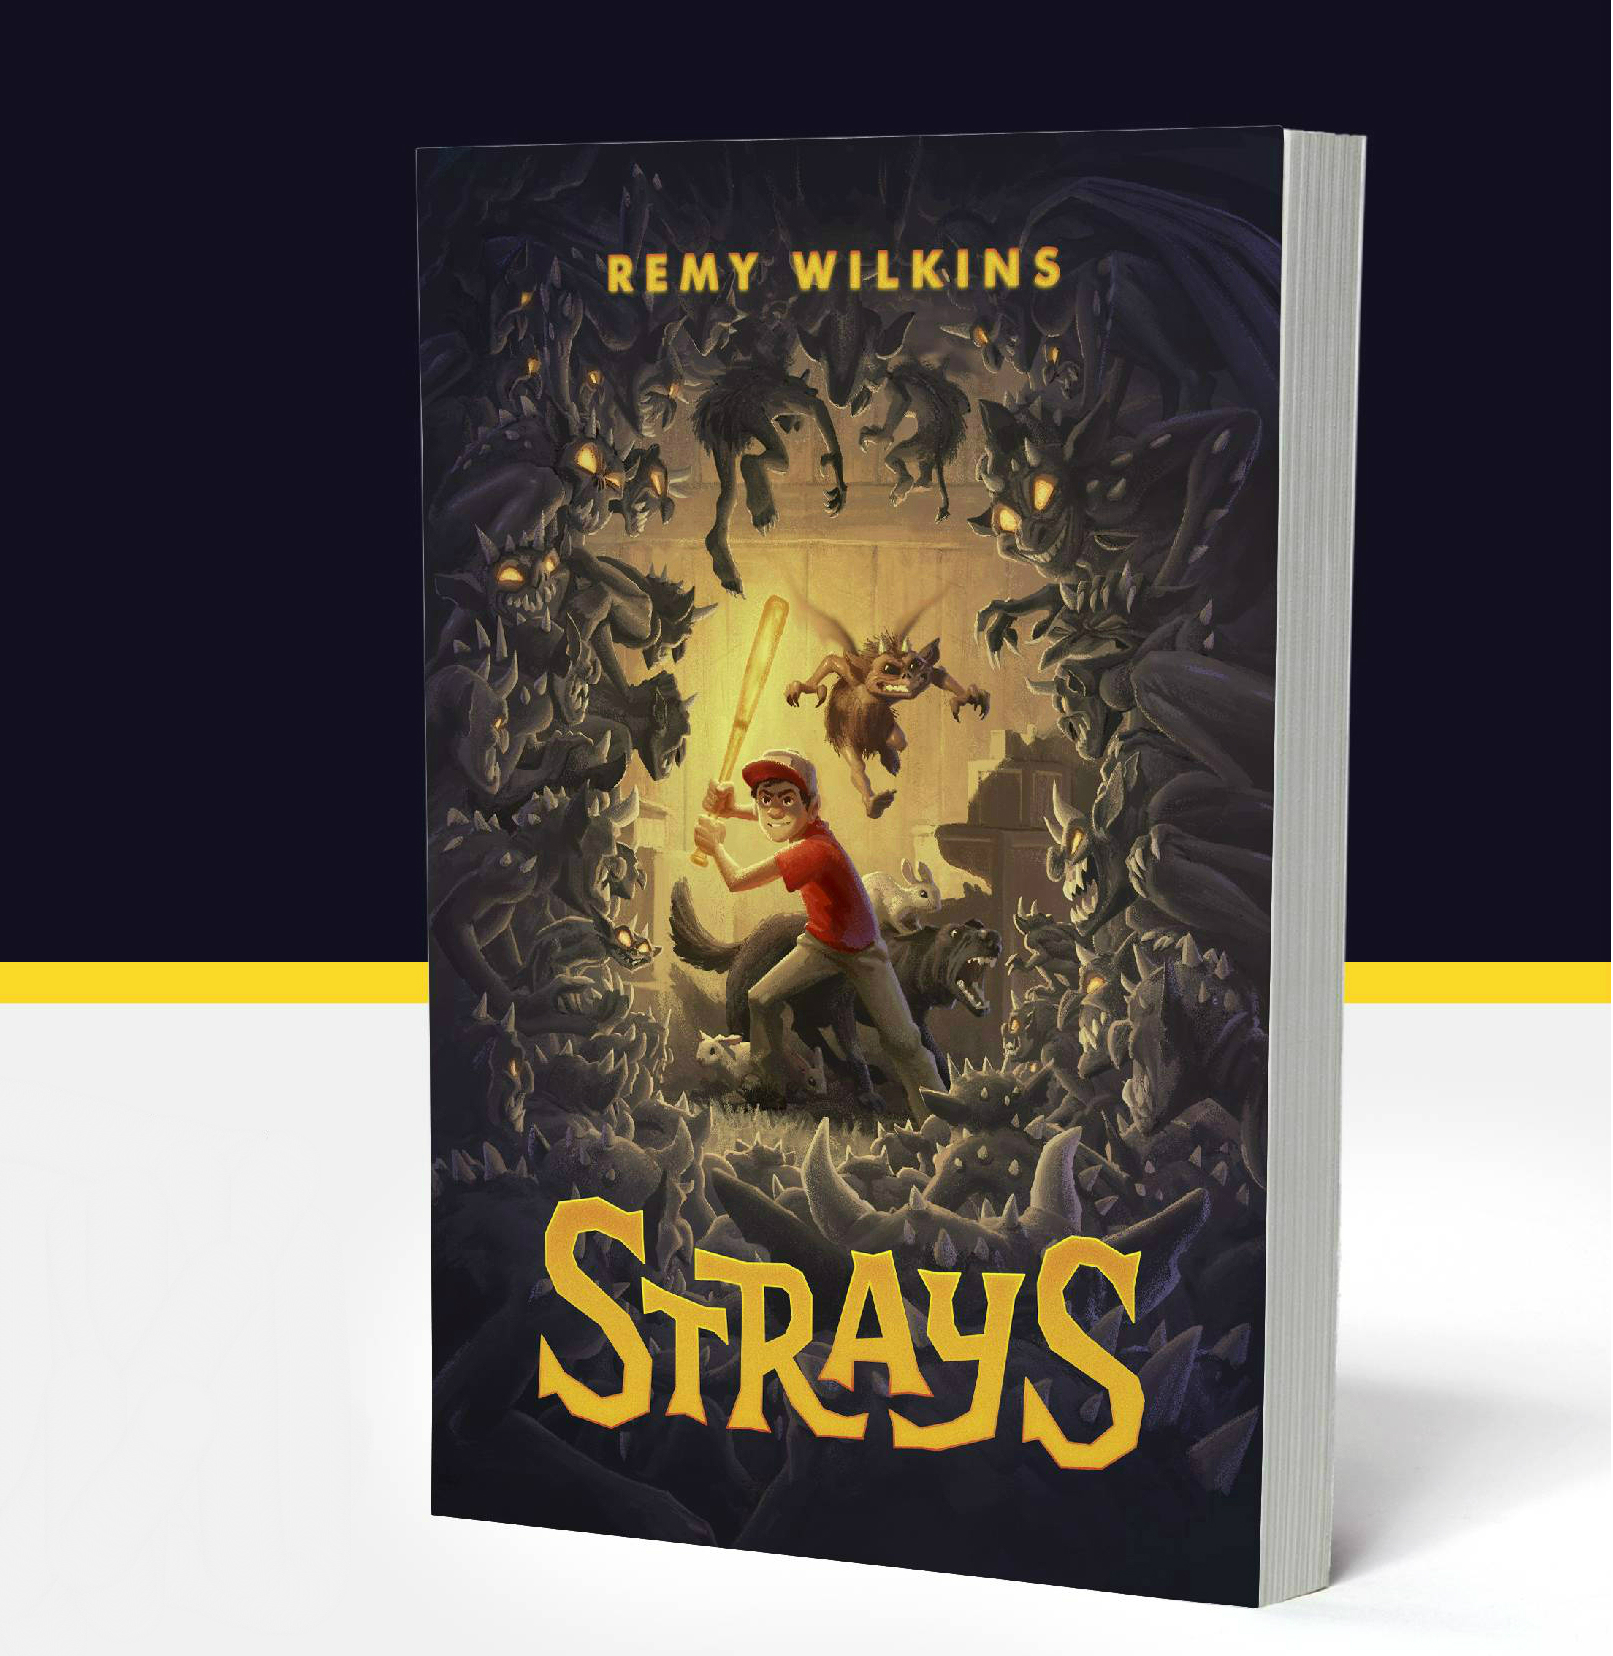 Interview with Remy Wilkins, Author of Strays